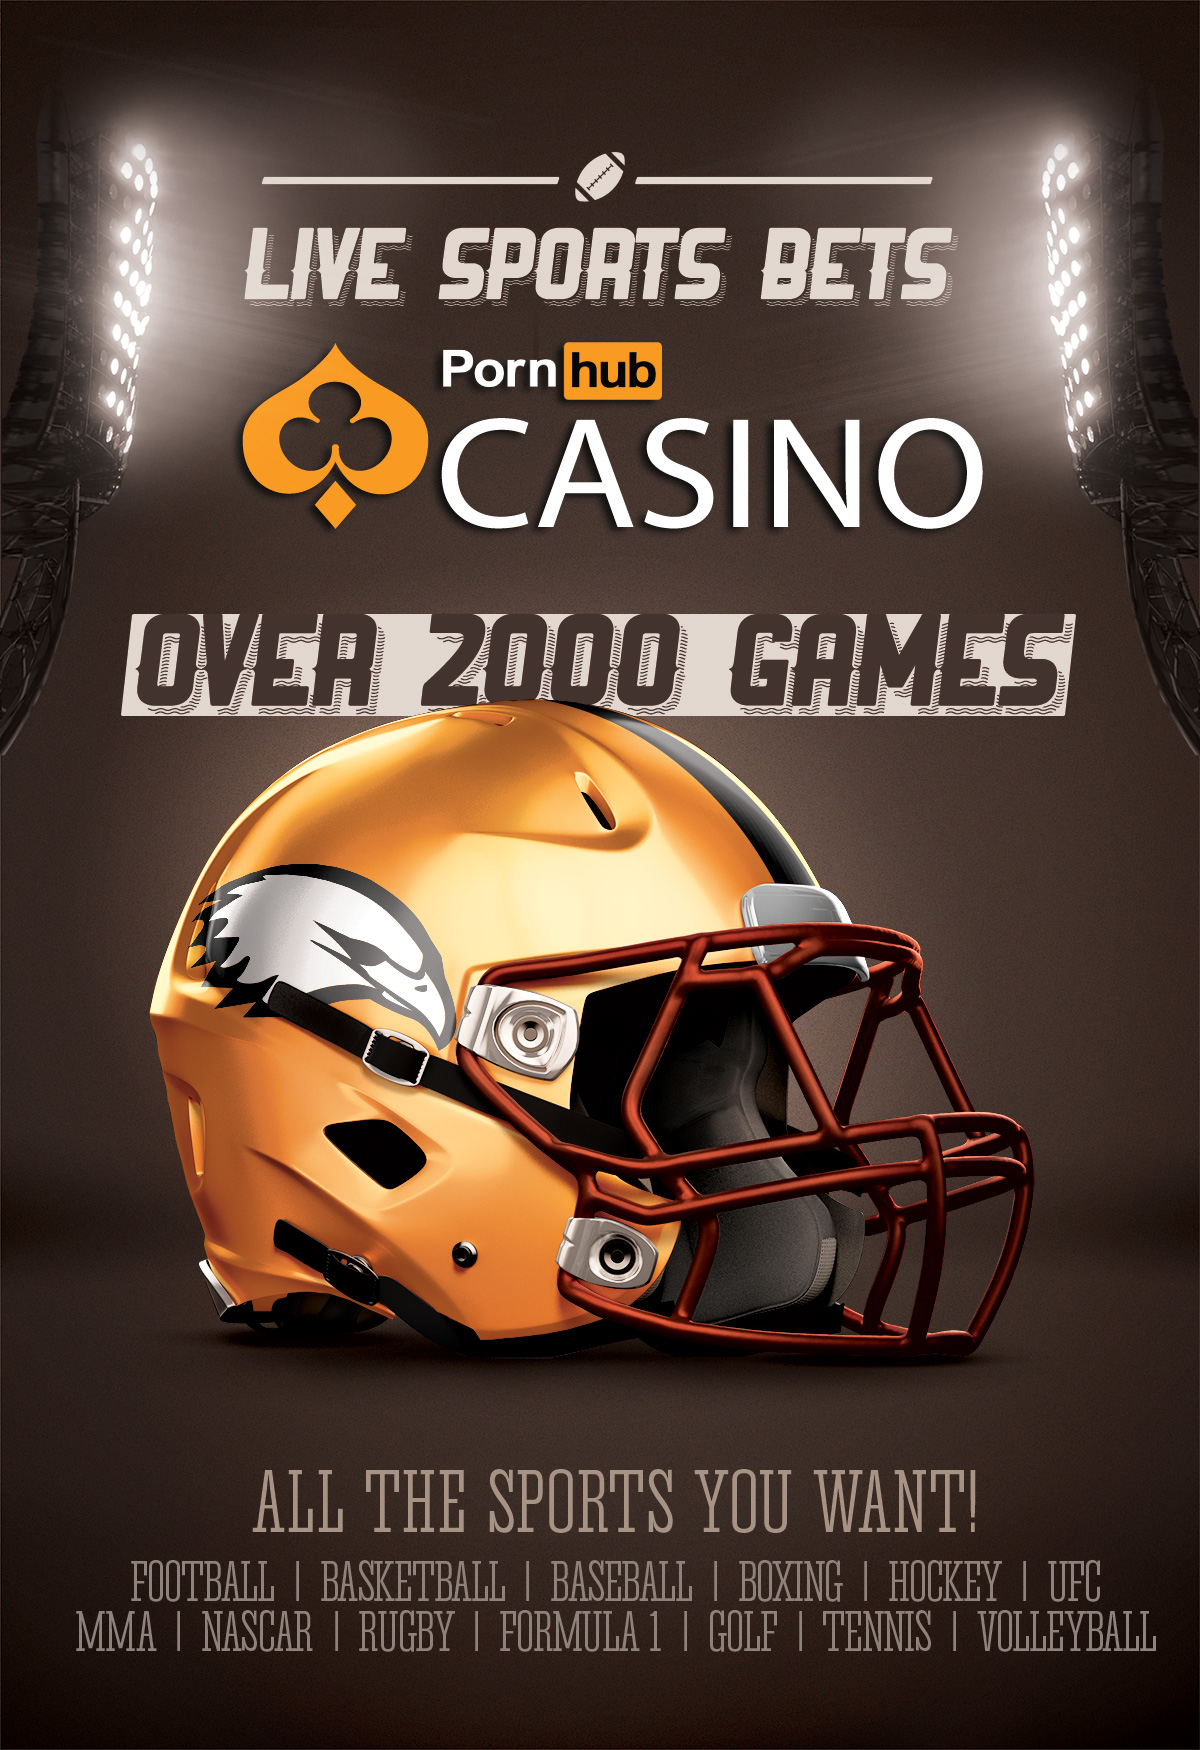 live-sports-bets-now-on-ph-casino-get-a-100-1st-deposit-bonus-up-to-400